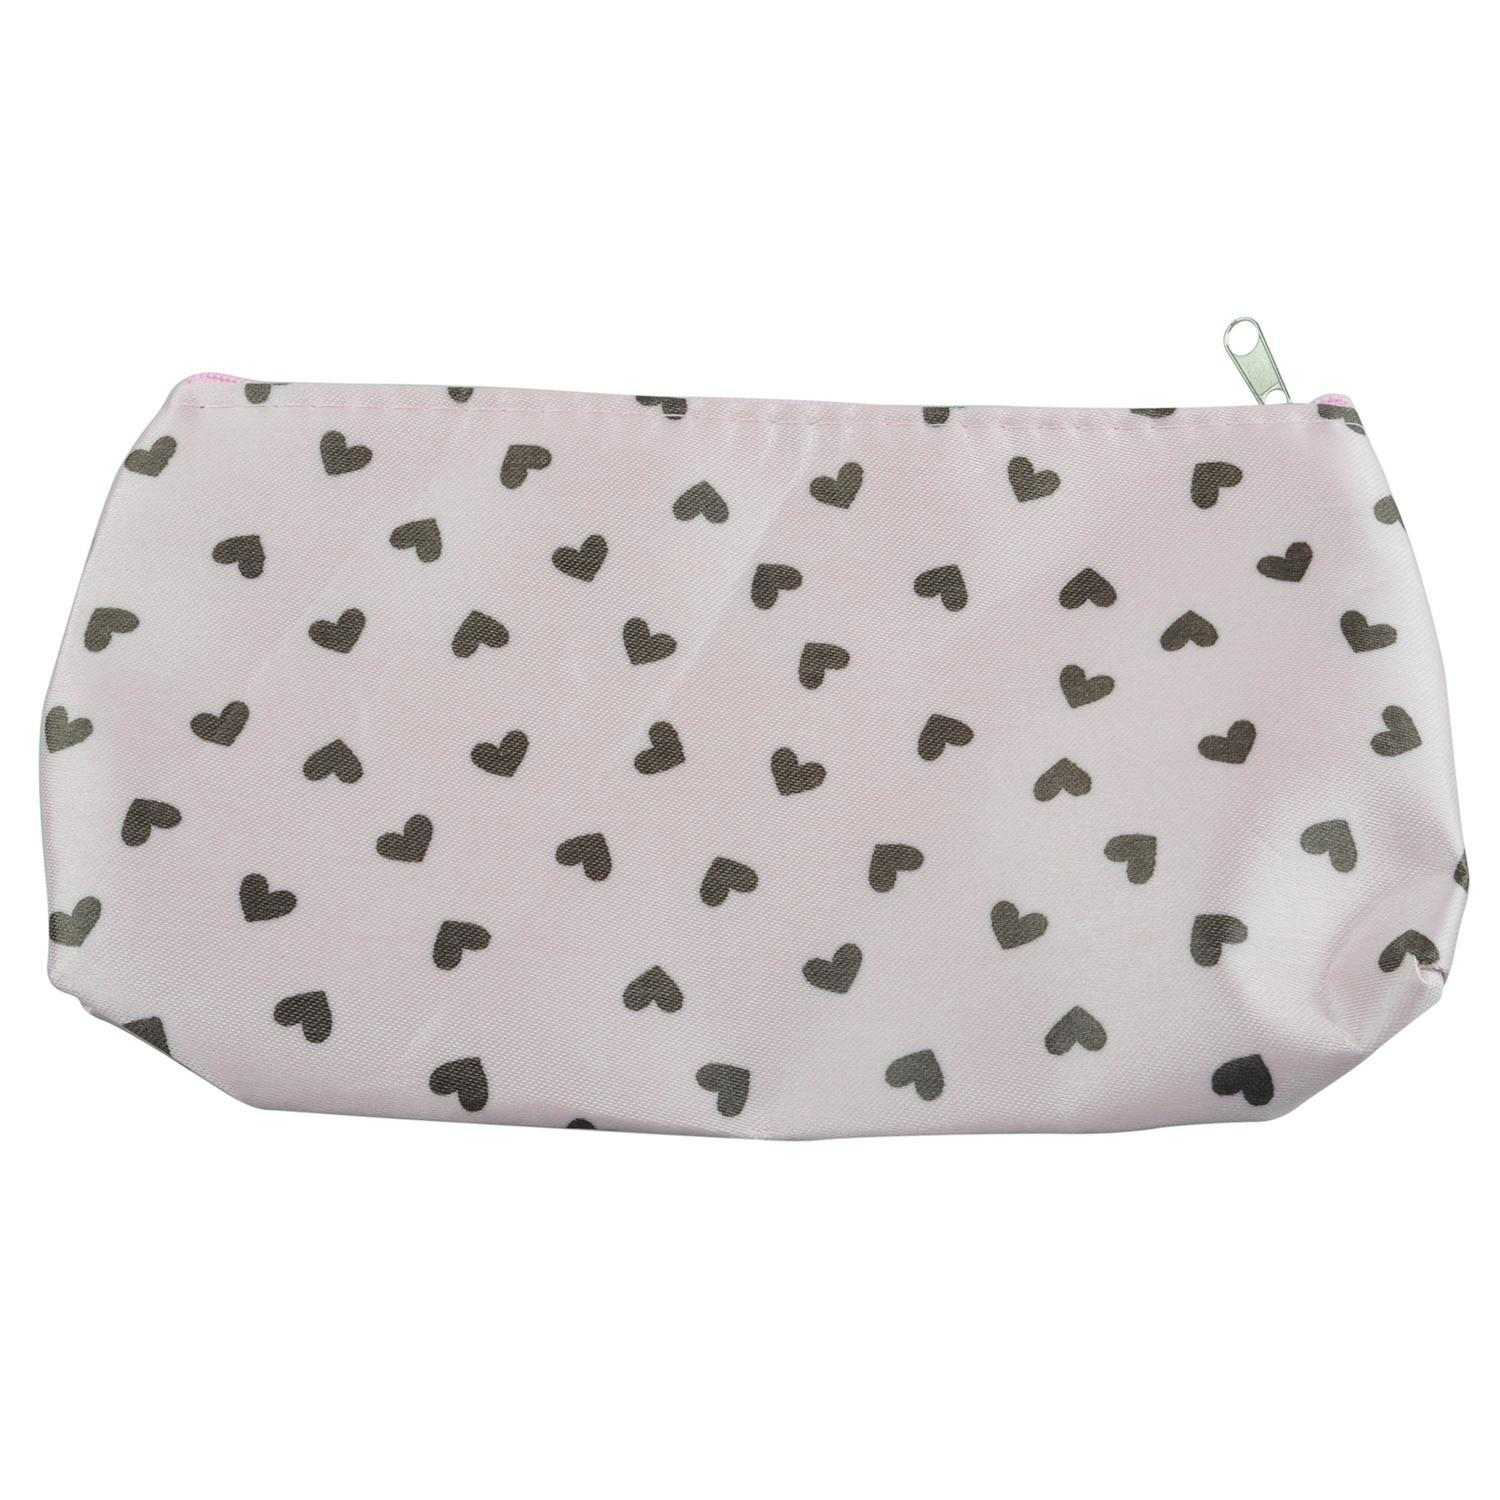 Großhandel-Sweet Heart Kosmetiktasche Make-up Bag Hard Case Bag - Pink